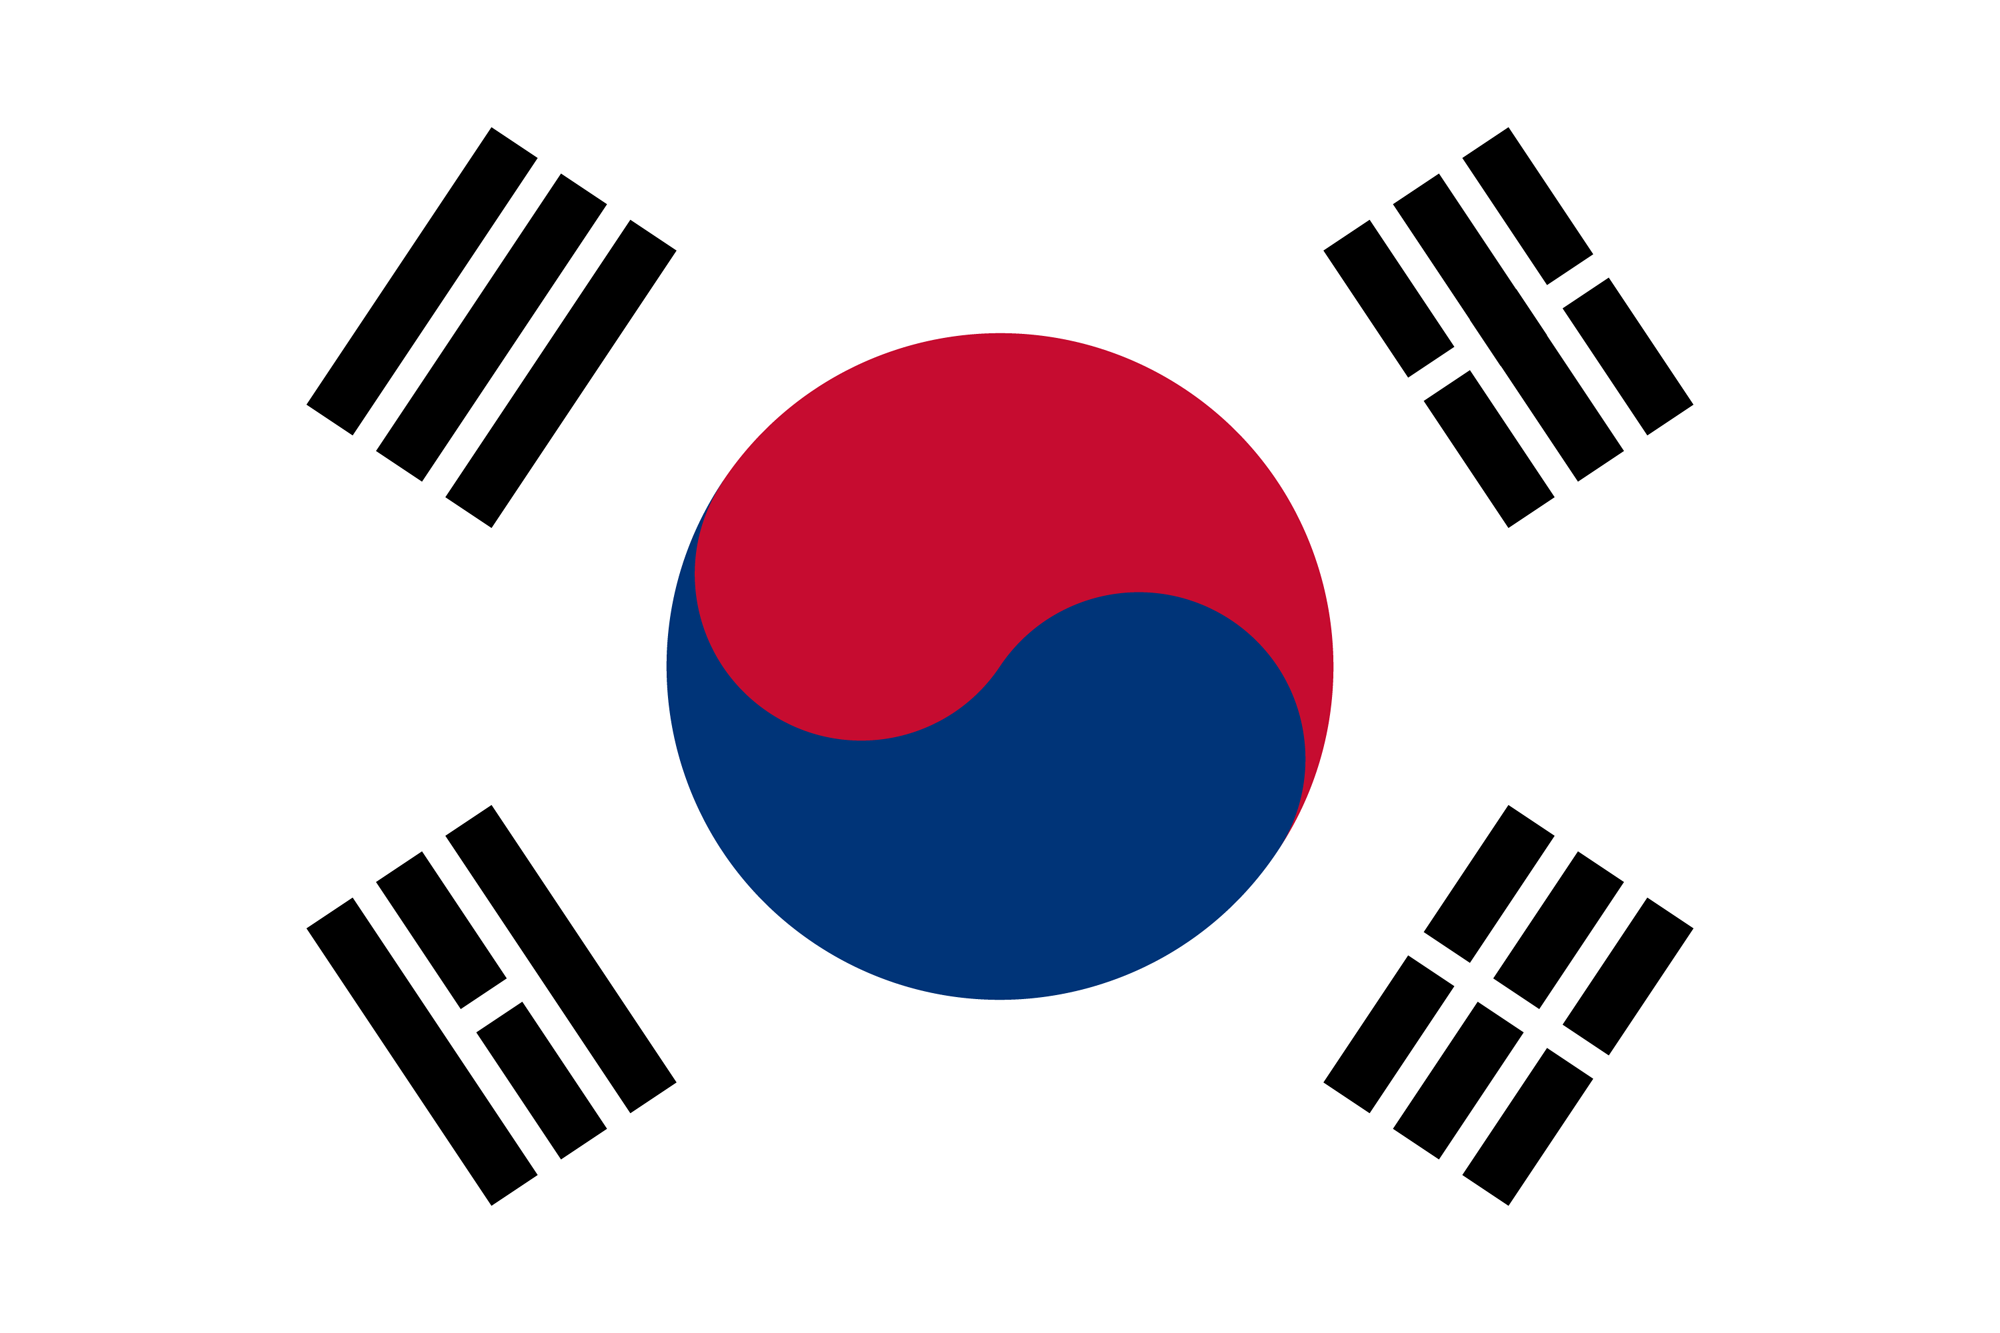 south-korea-flag-large